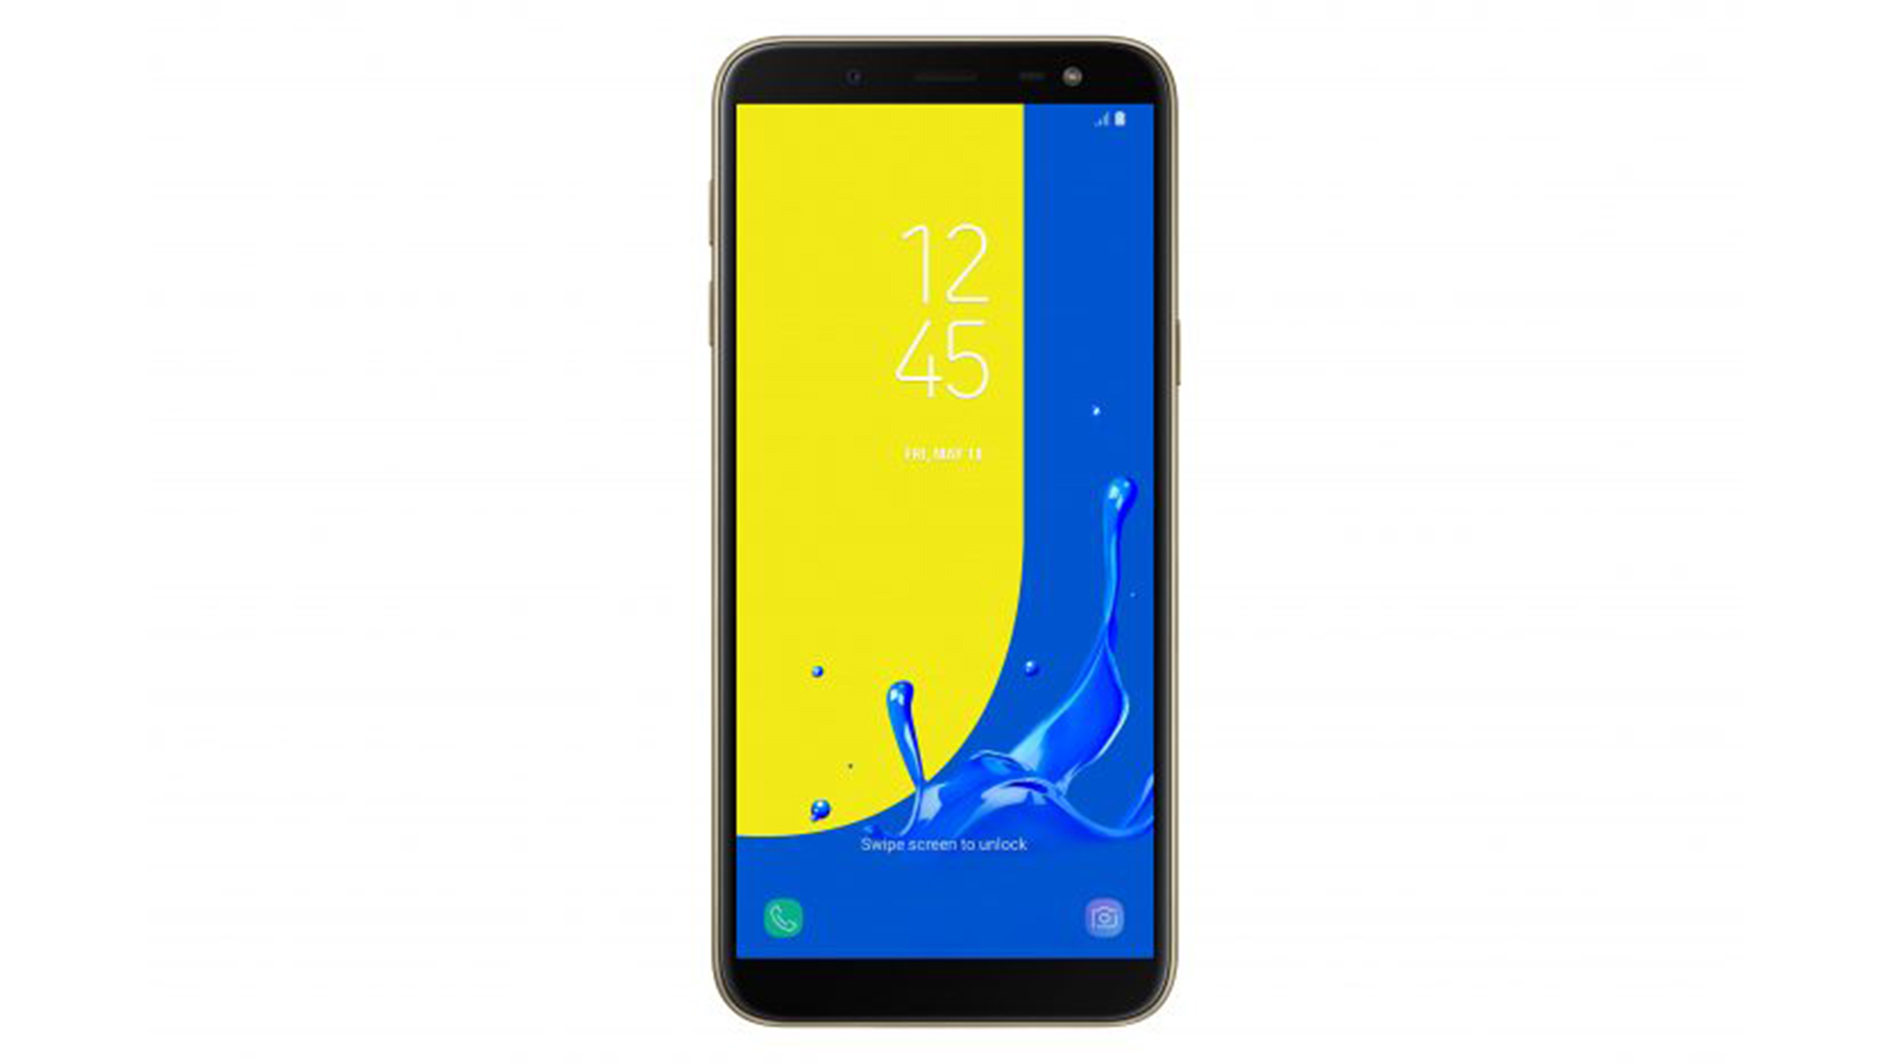 Samsung s Galaxy J6 is expected to launch sometime in summer 2018 As for specifics well I m afraid Samsung is yet to release such details but I ll keep